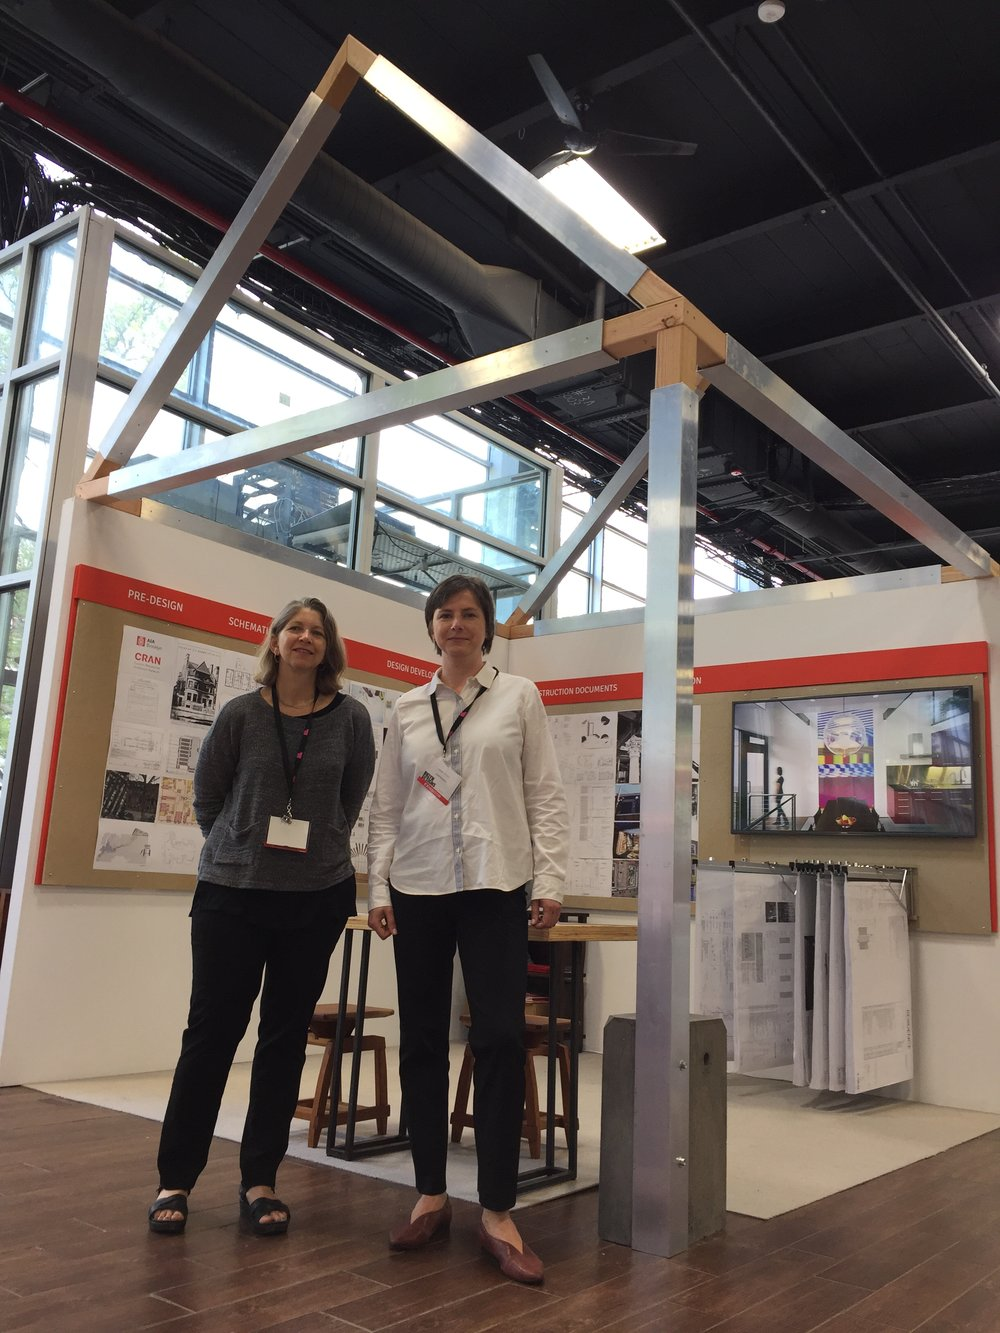 Ula Bochinska of Bostudio with colleague Kimberly Neuhaus of Neuhaus Design Architecture in front of the Brooklyn CRAN AIA booth.